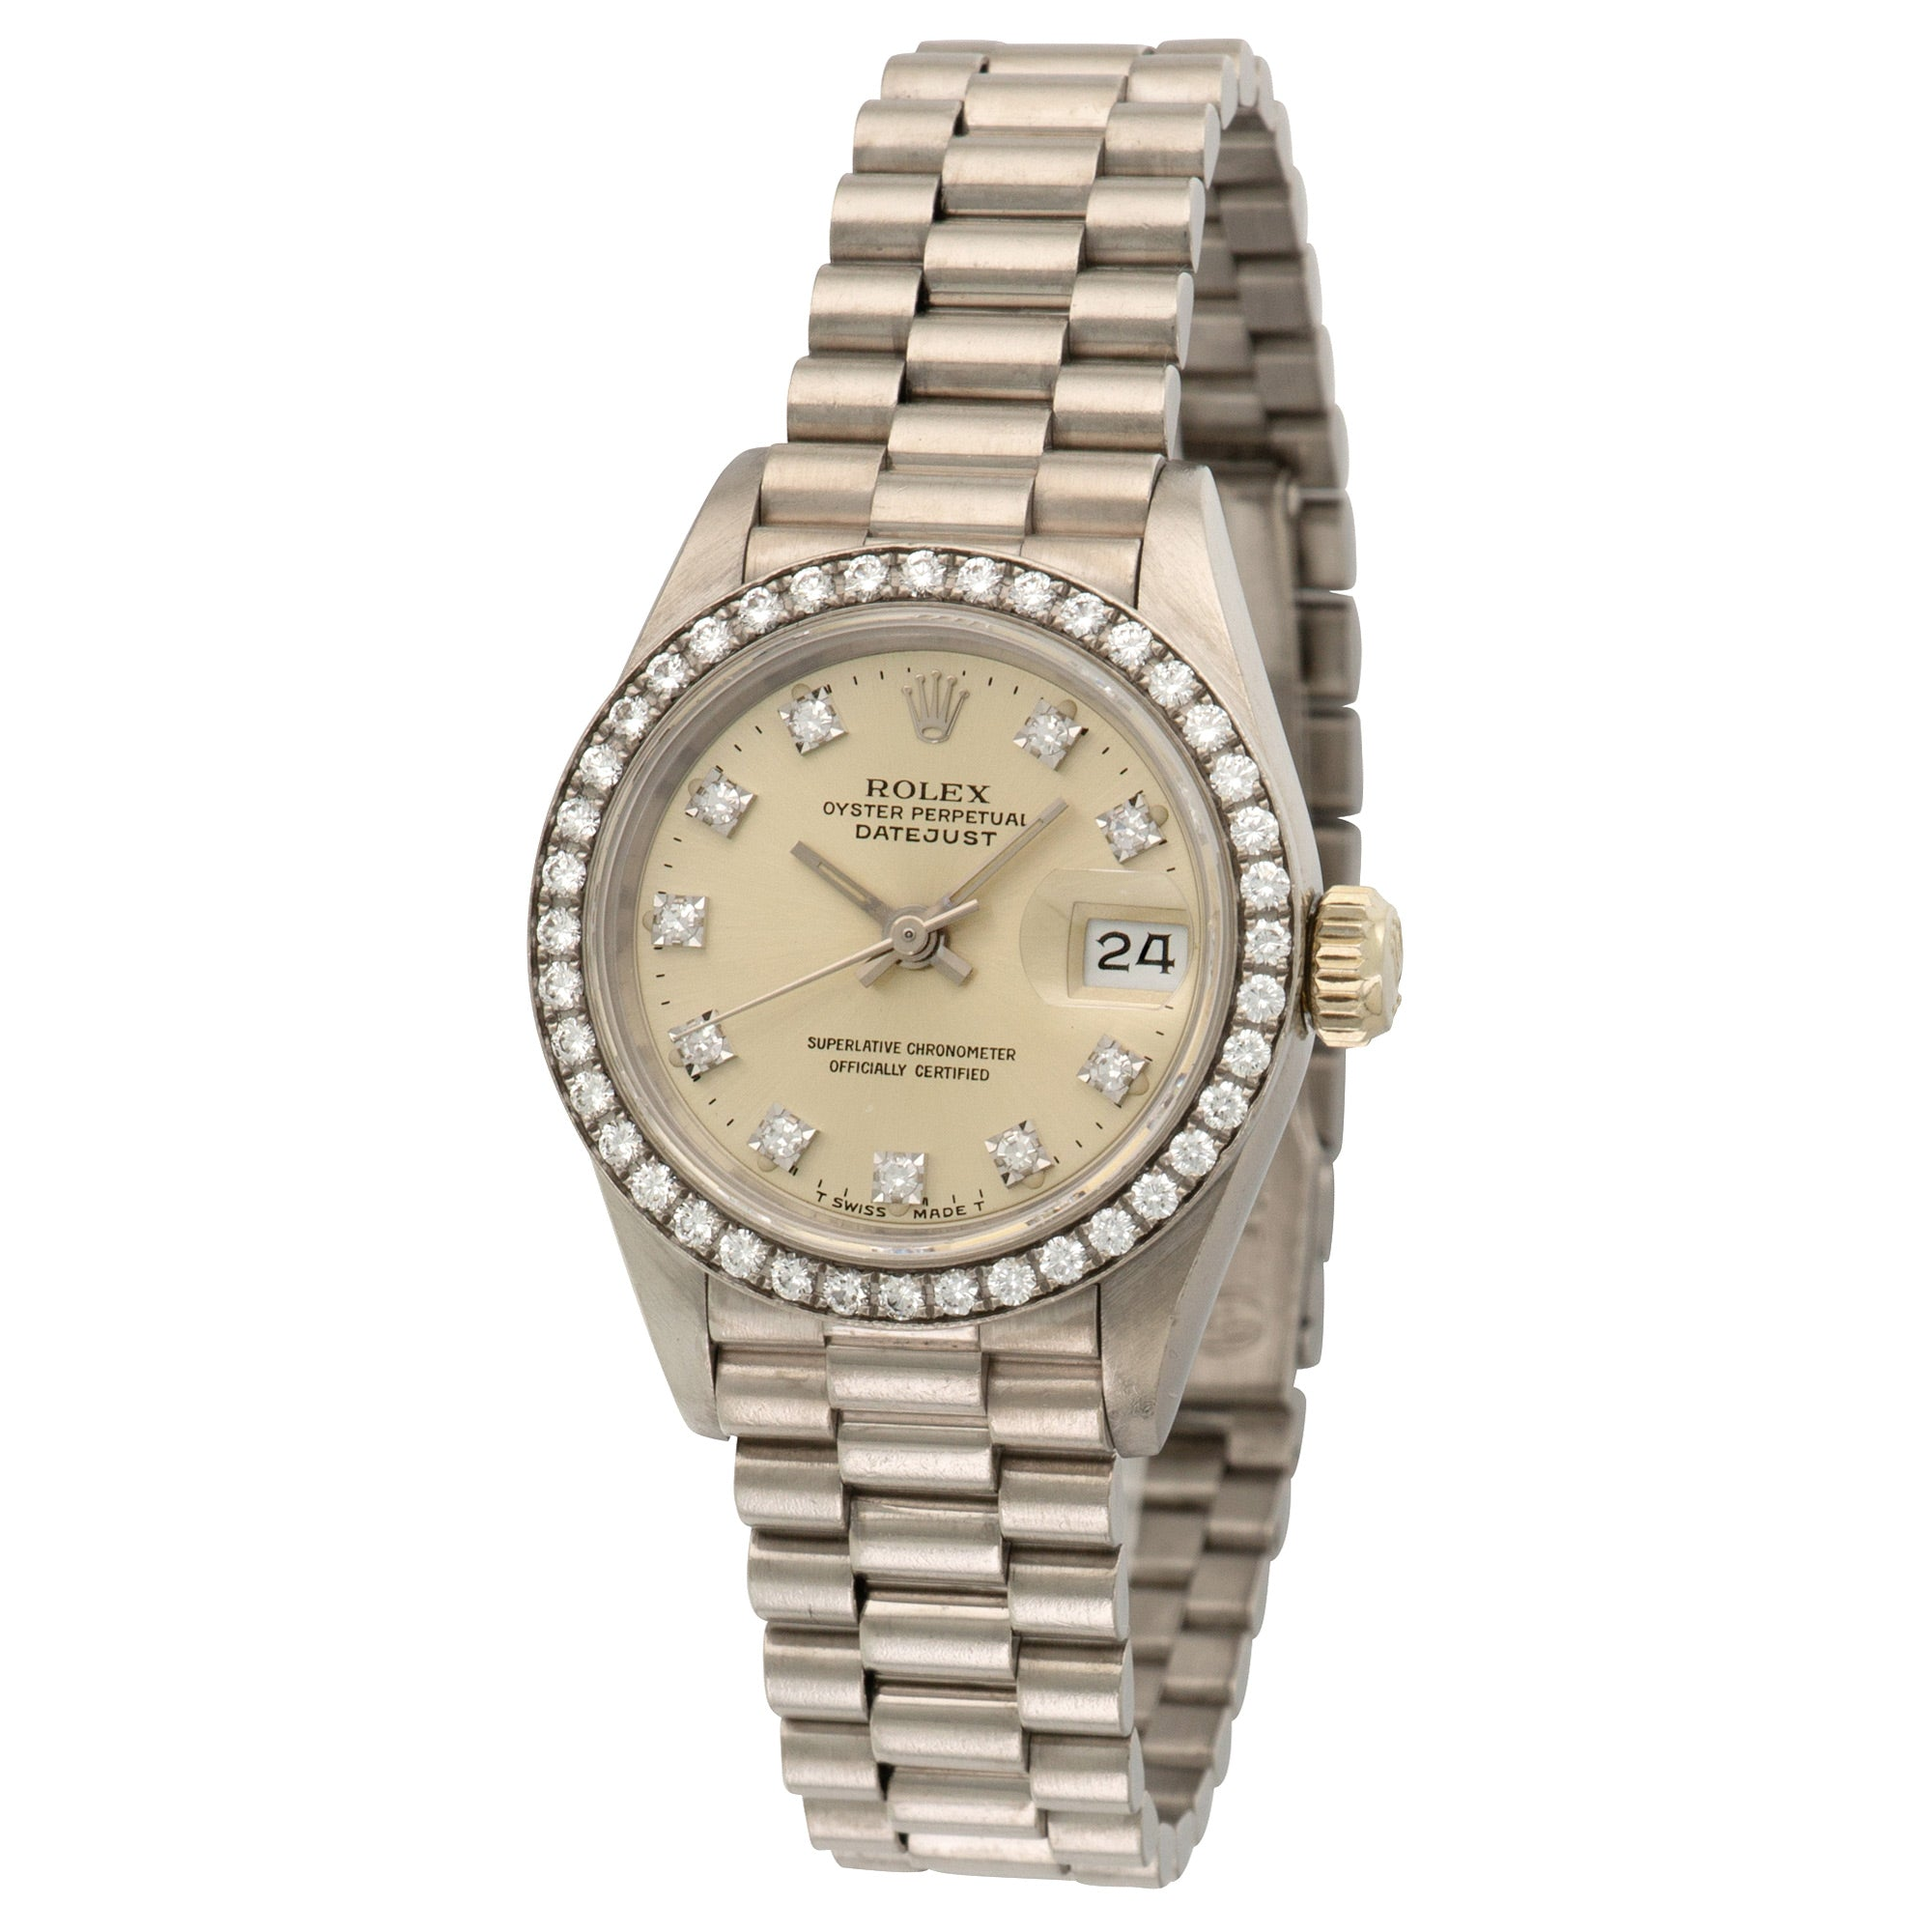 Rolex Datejust 69139 18k WG  Excellent Ladies 18k WG Silver with Diamond Markers 26mm Automatic 1989 White Gold Bracelet Leather Travel Case